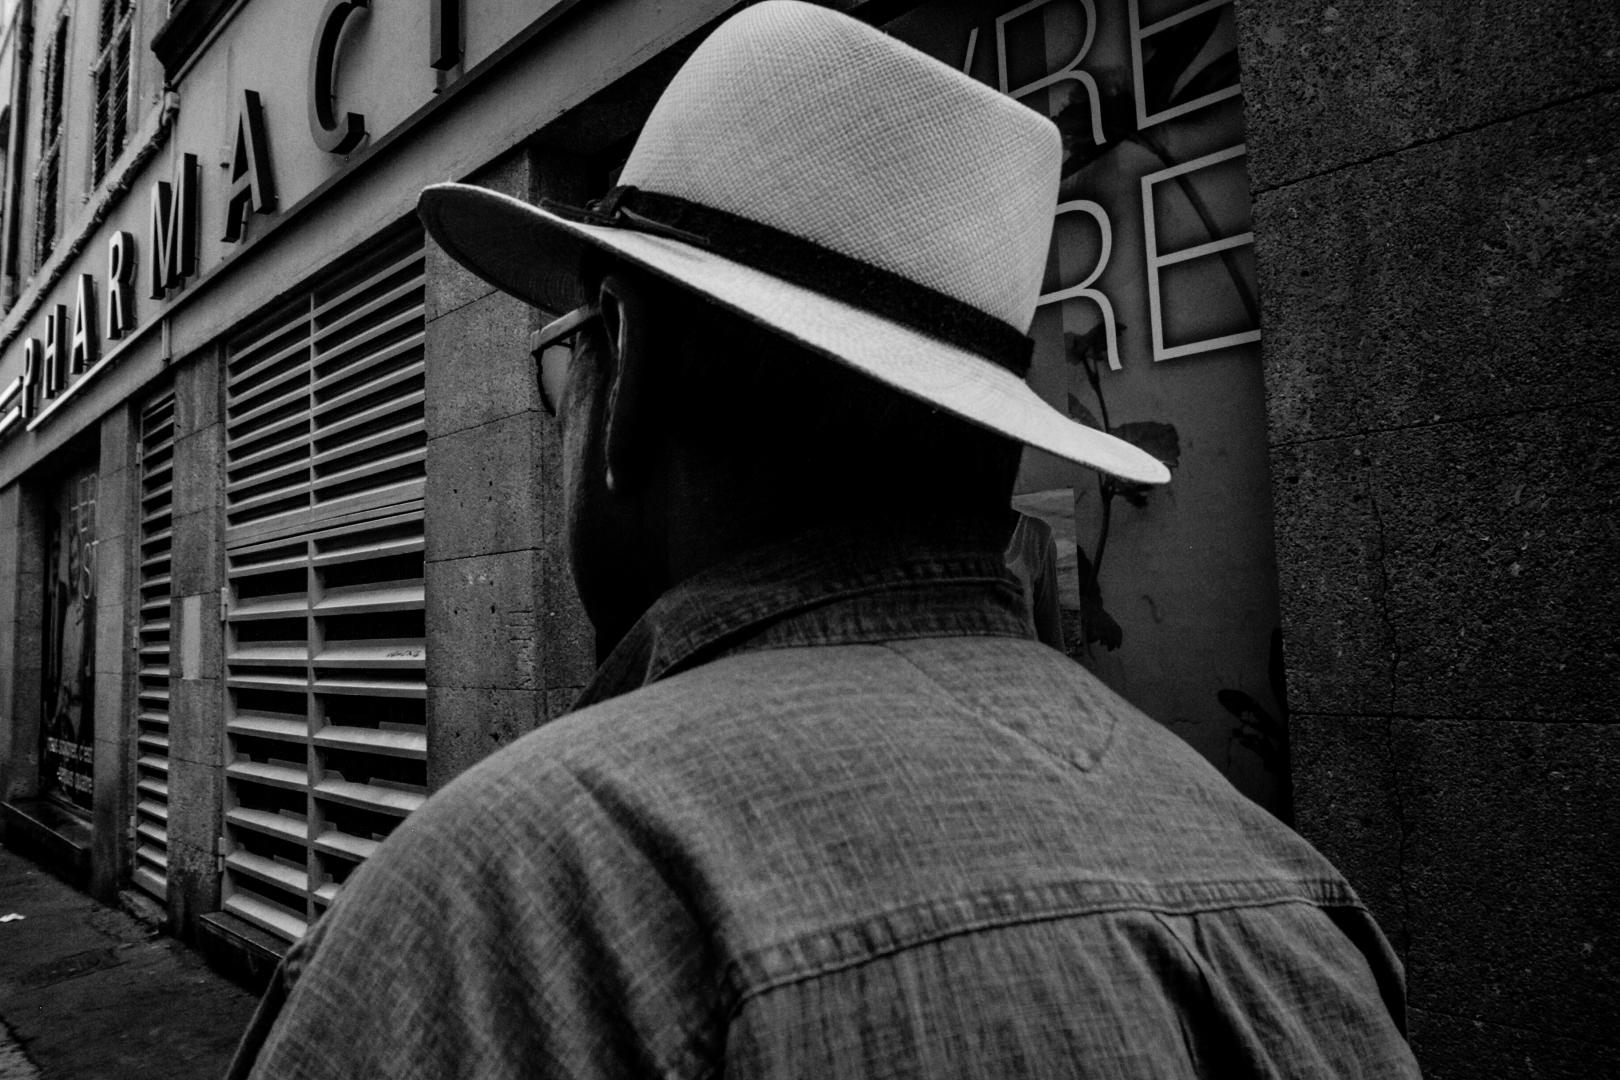 jeff-chane-mouye-street-photography-Aix-en-Provence-620